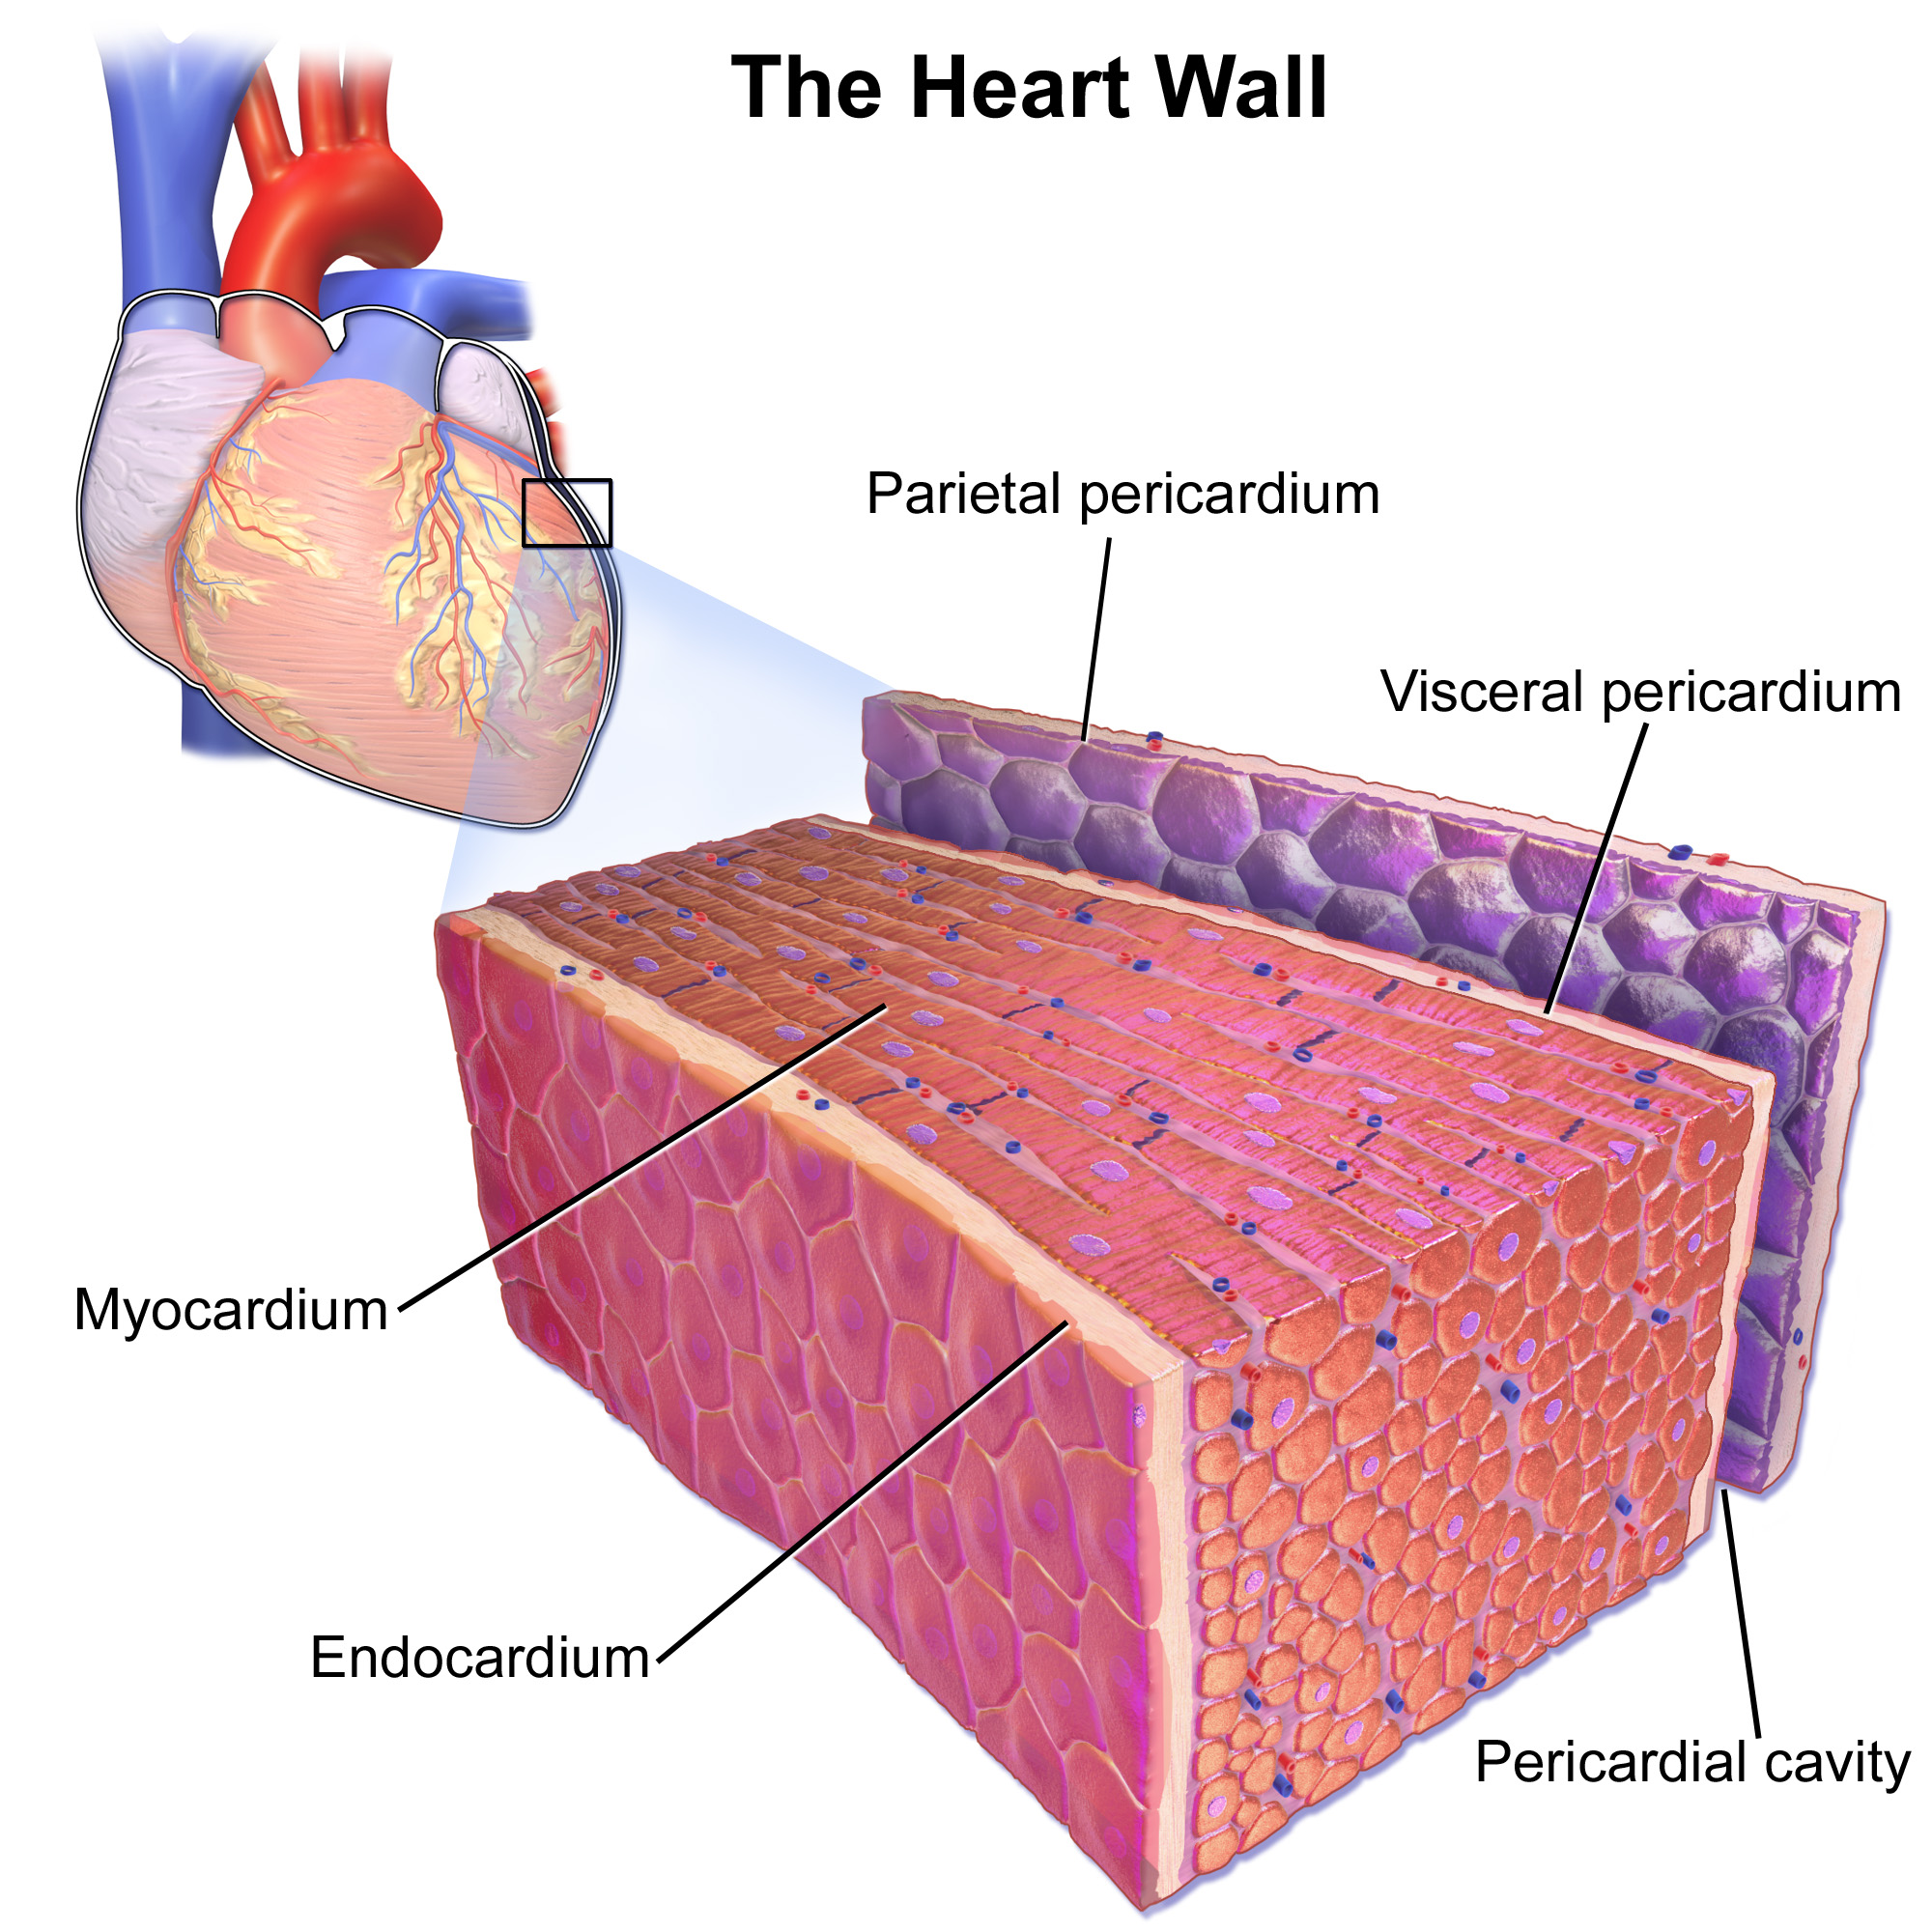 14.3.2 Layers of the Heart Wall